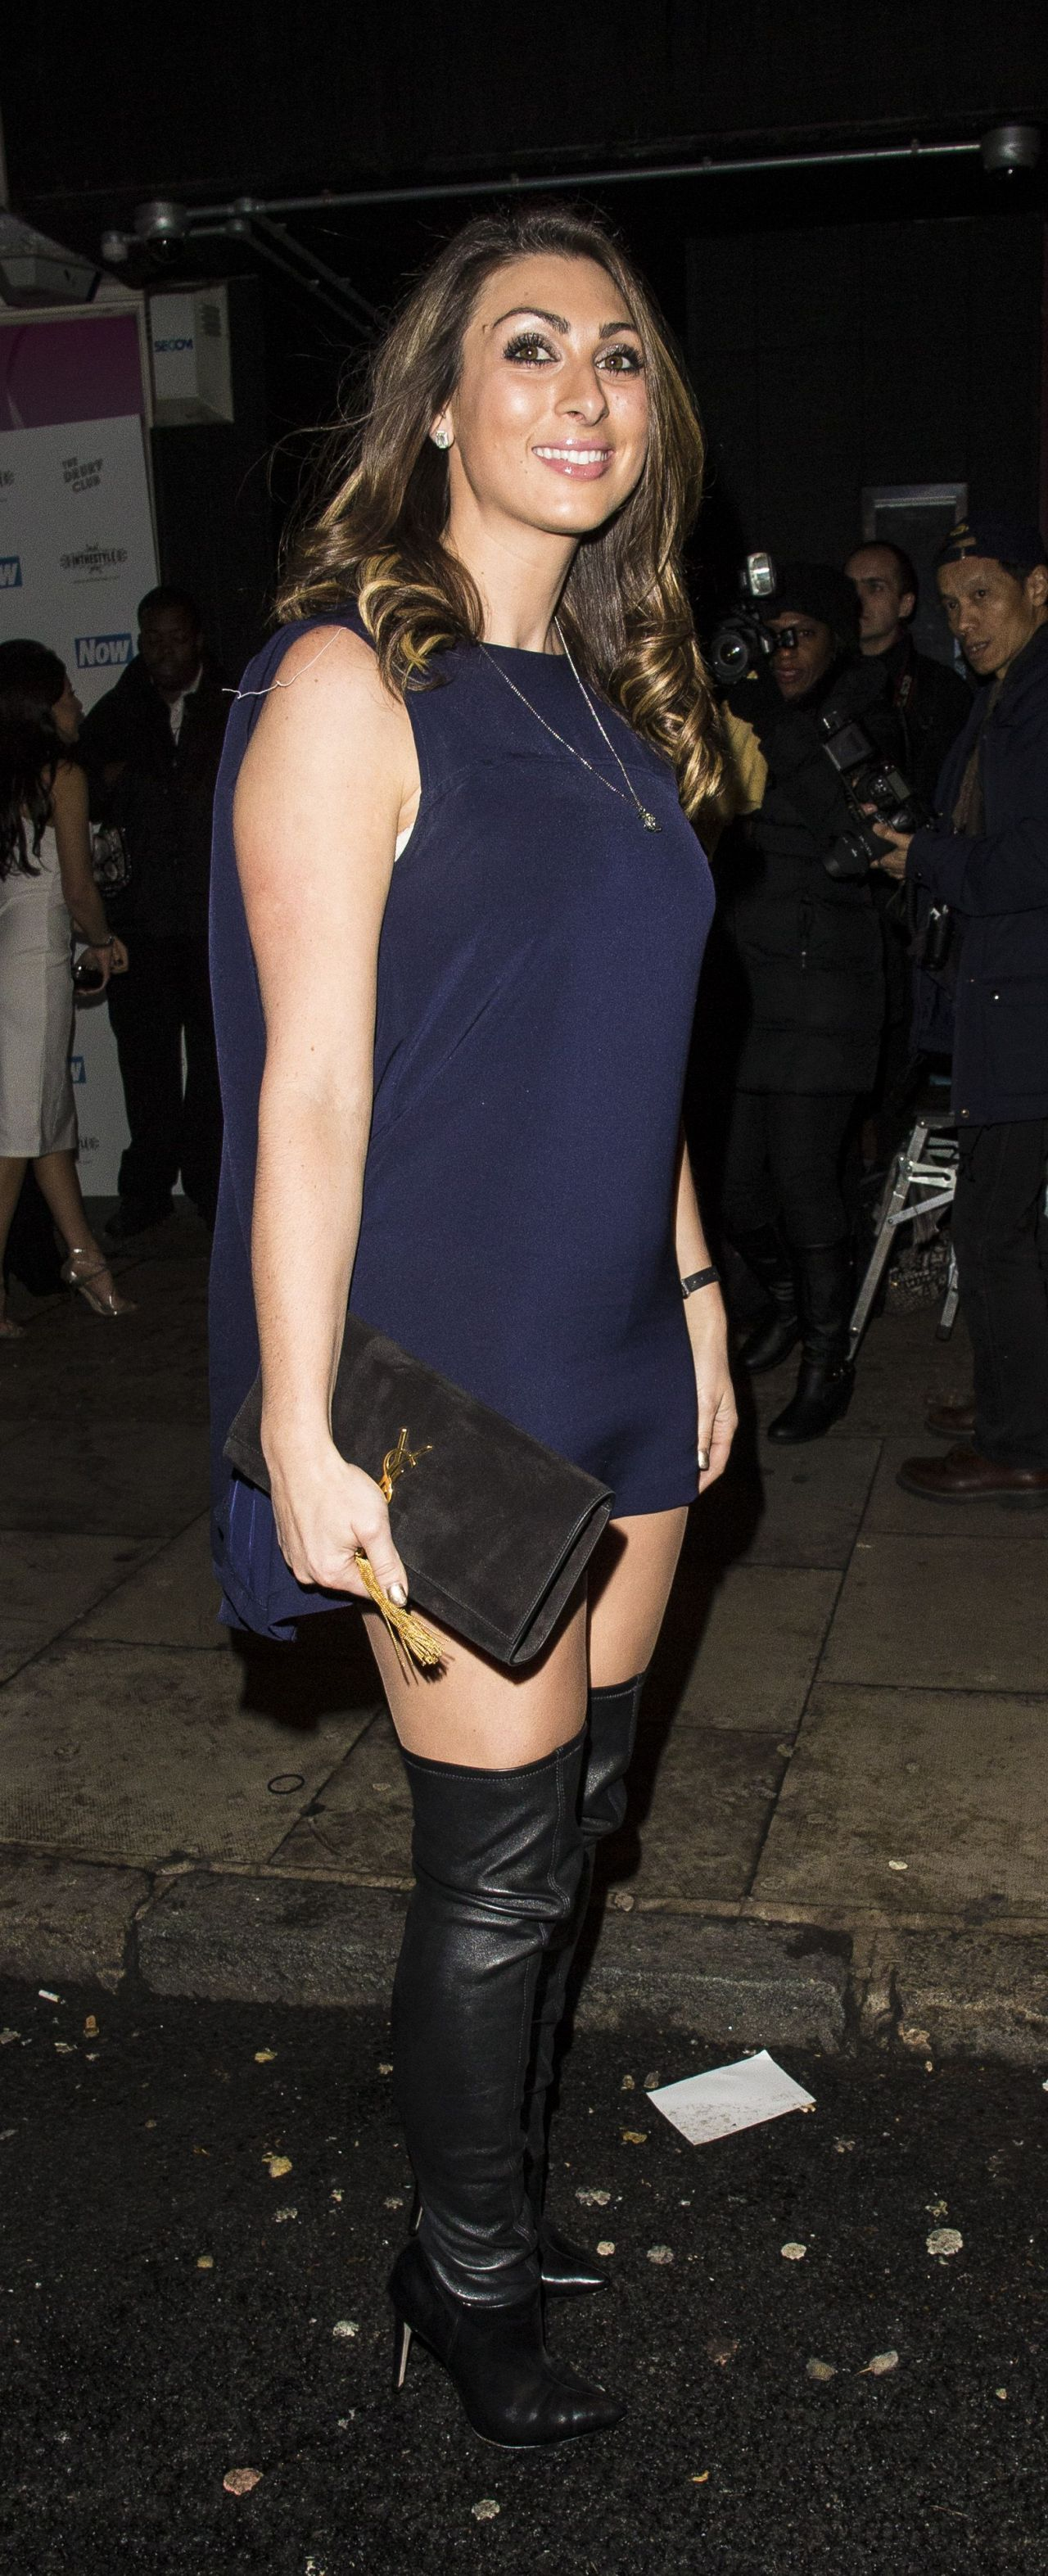 Luisa Zissman Now Christmas Party In London November 2014